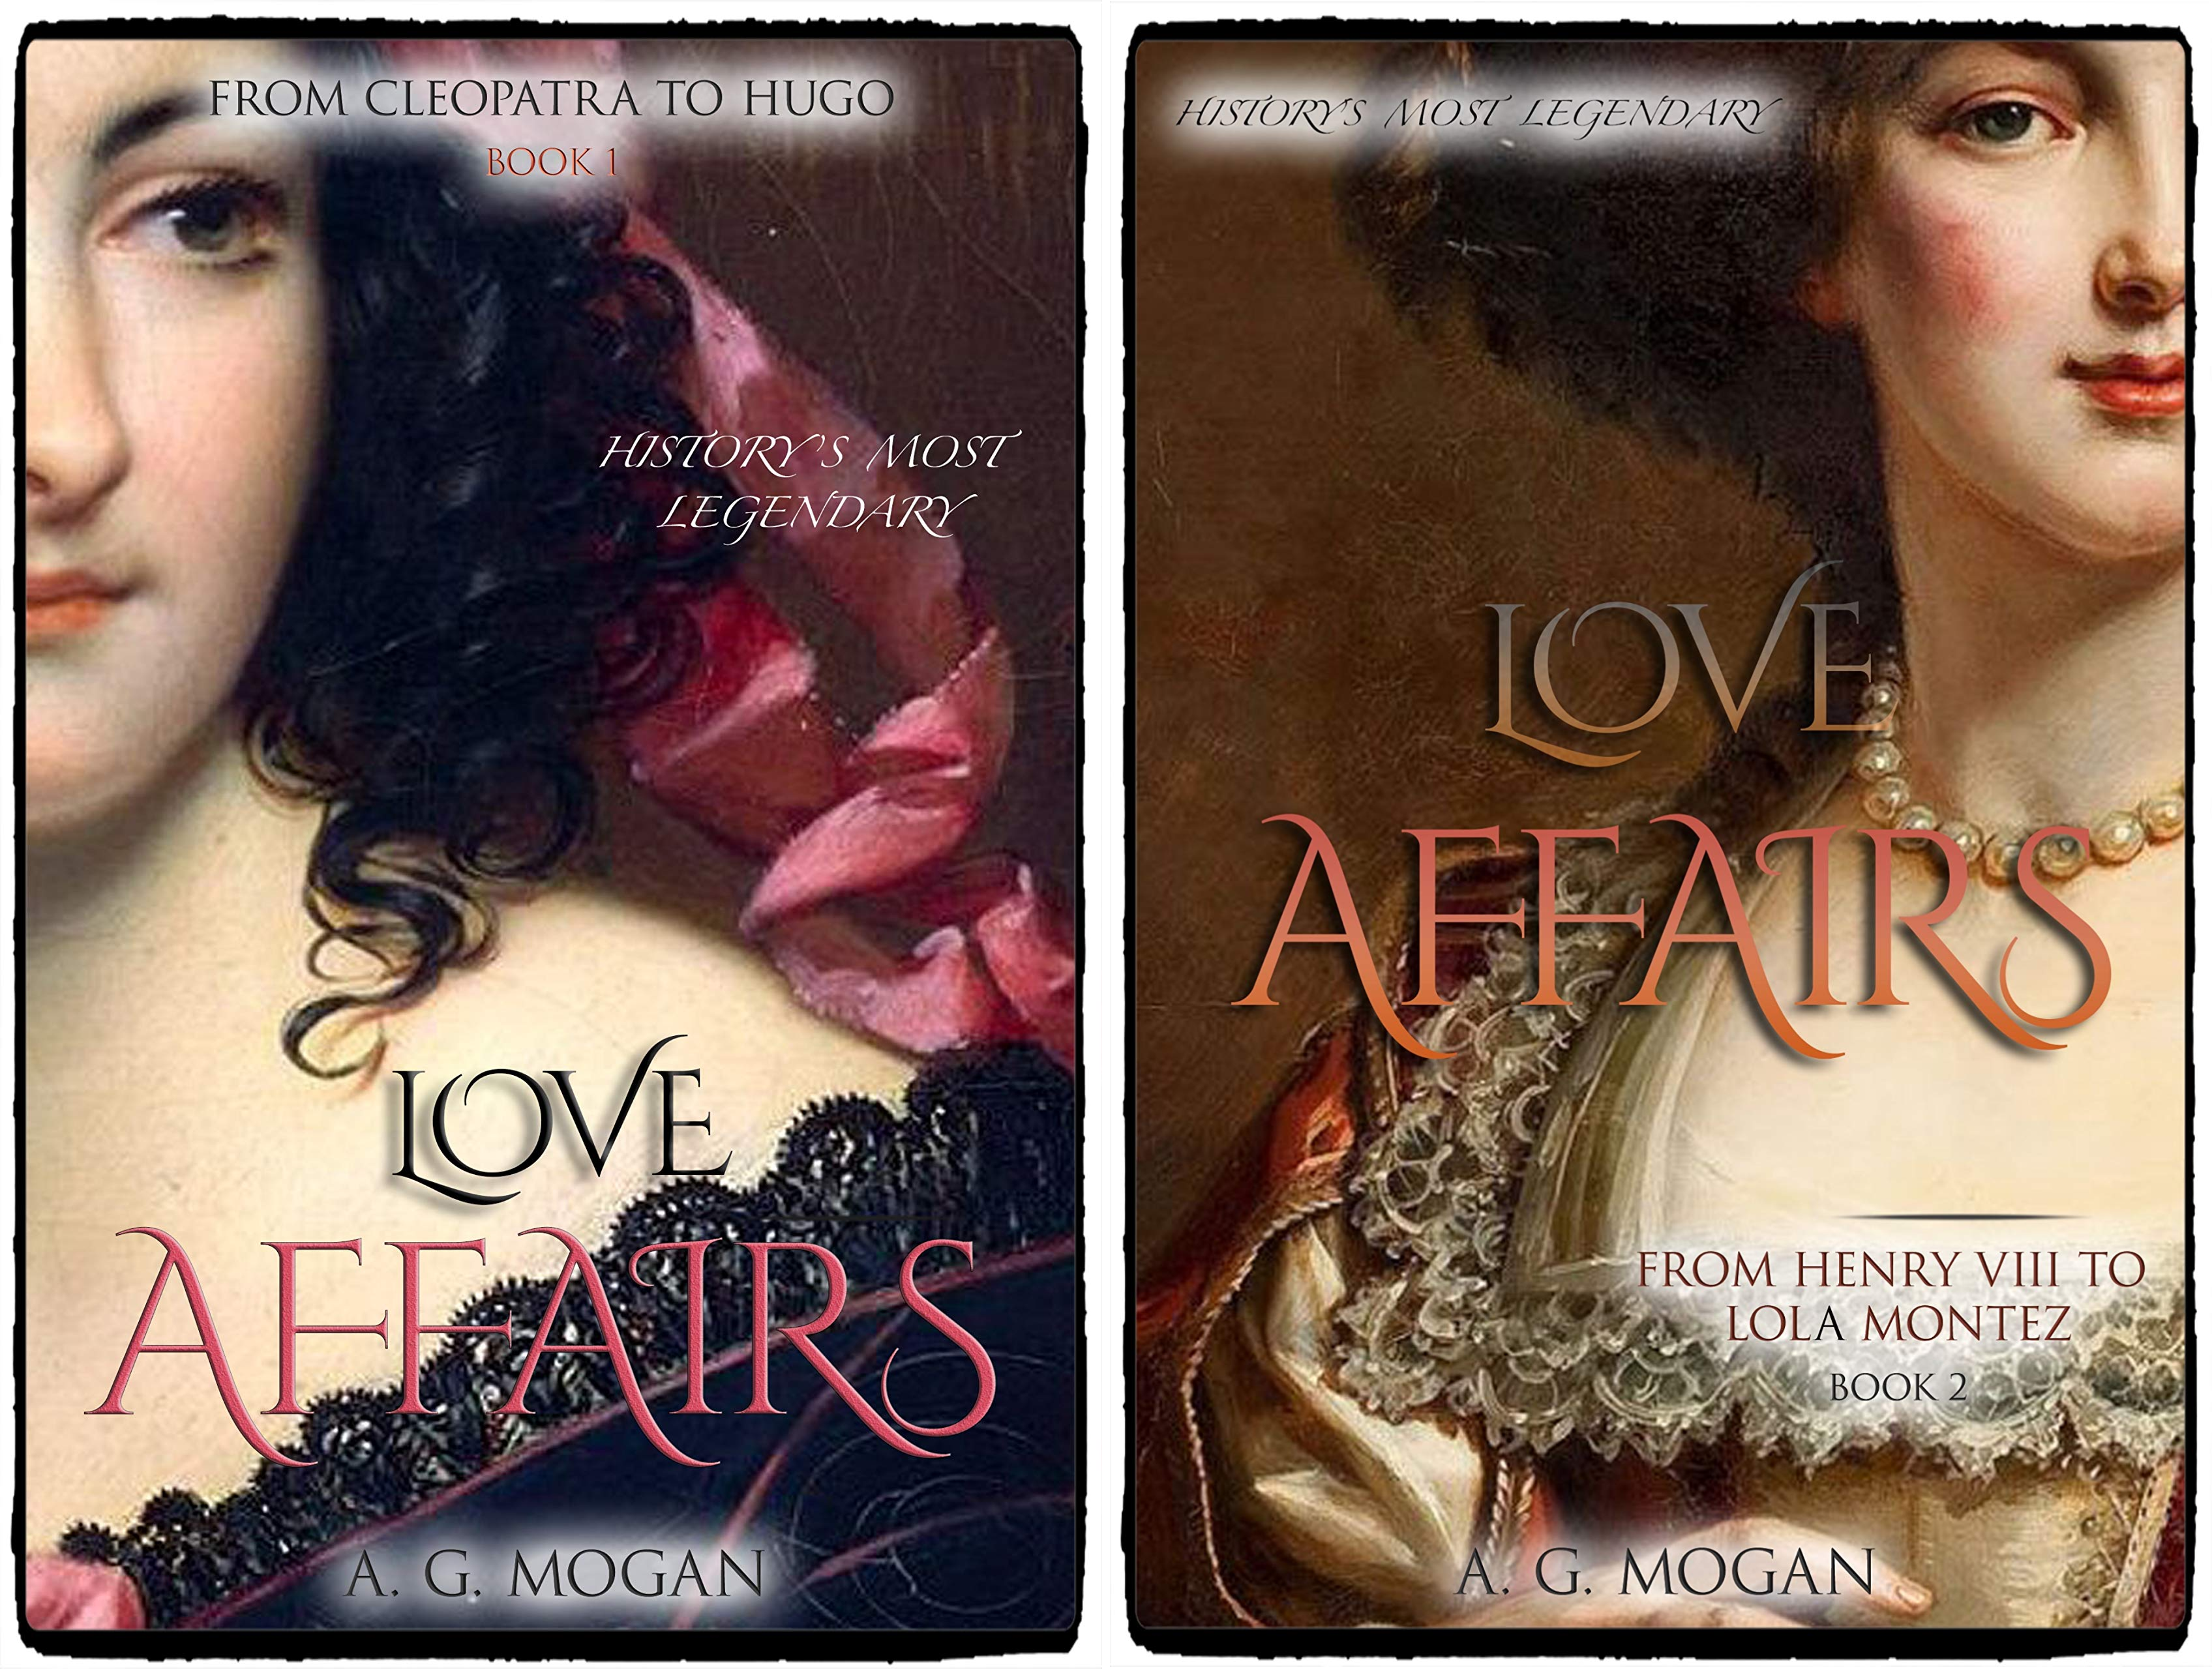 History's Most Legendary Love Affairs (2 Book Series)